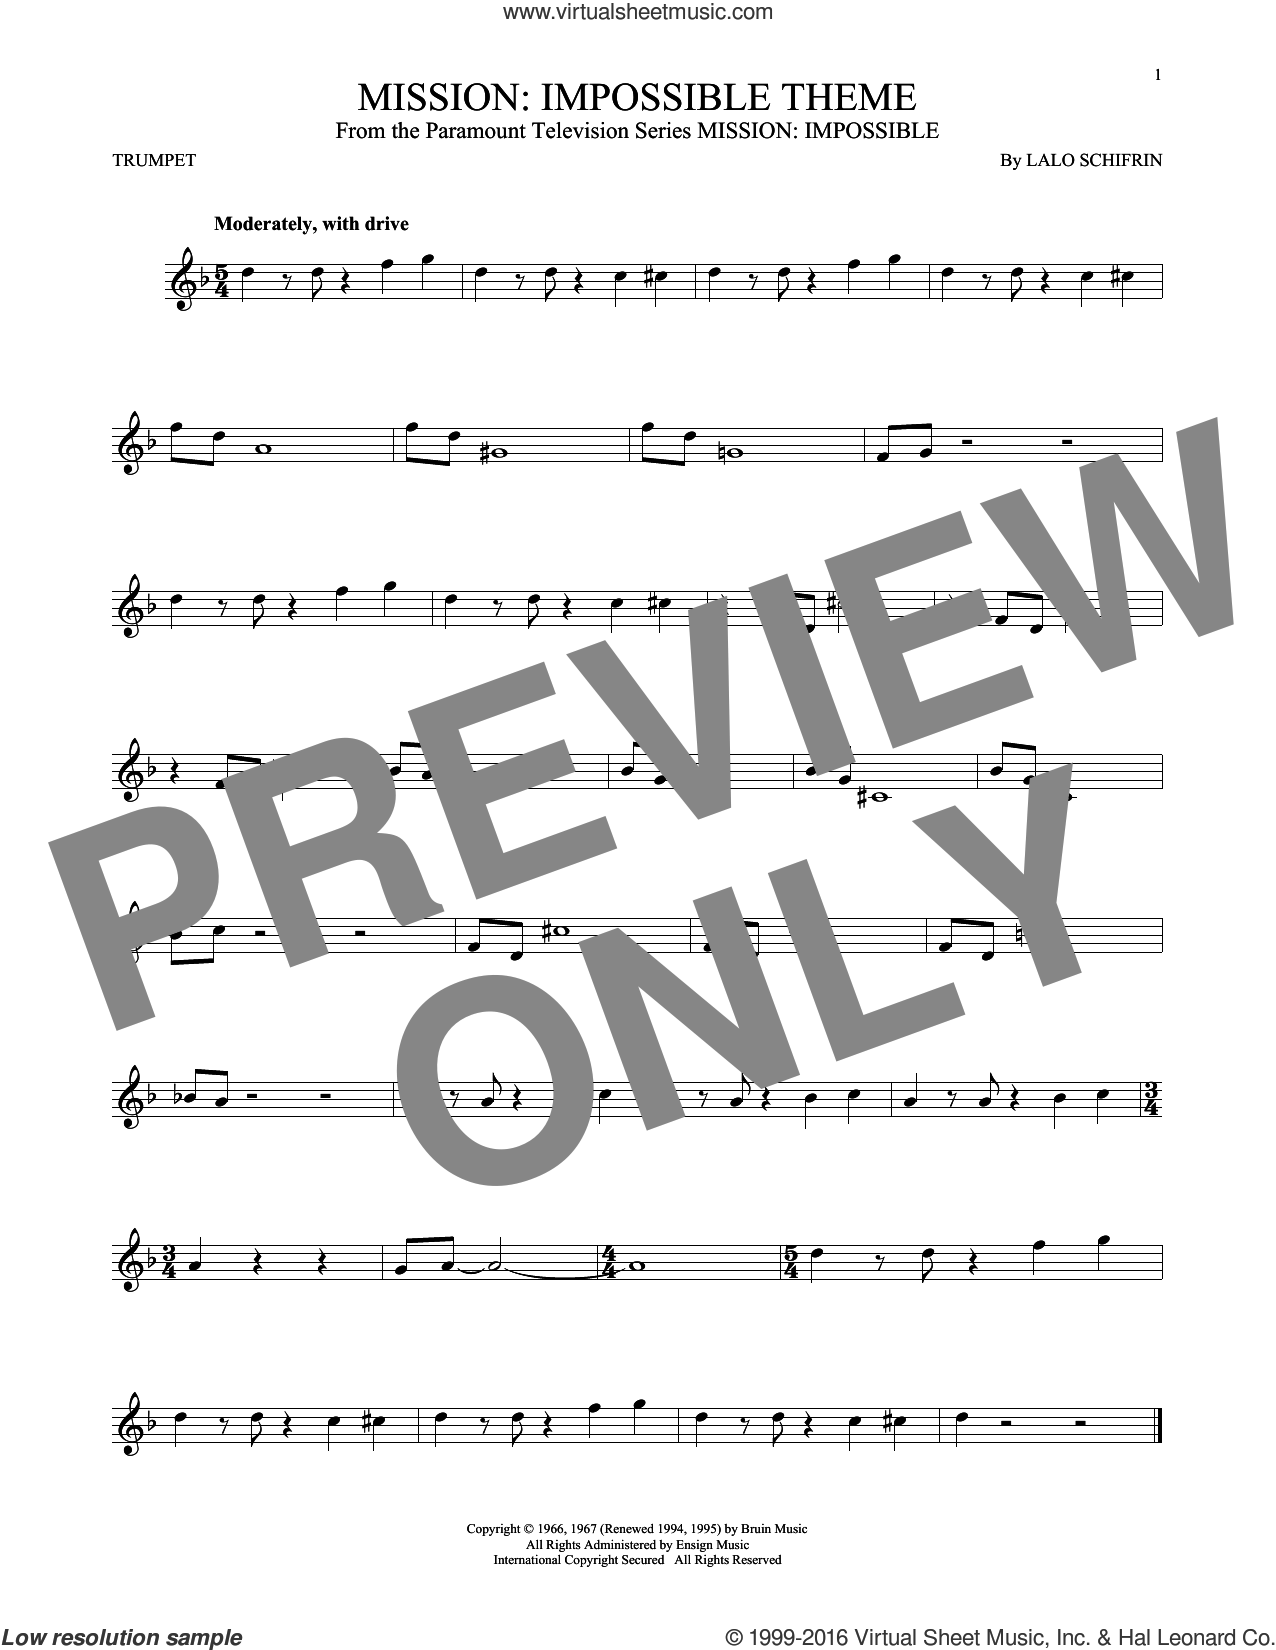 Mission: Impossible Theme sheet music for trumpet solo by Lalo Schifrin, intermediate skill level